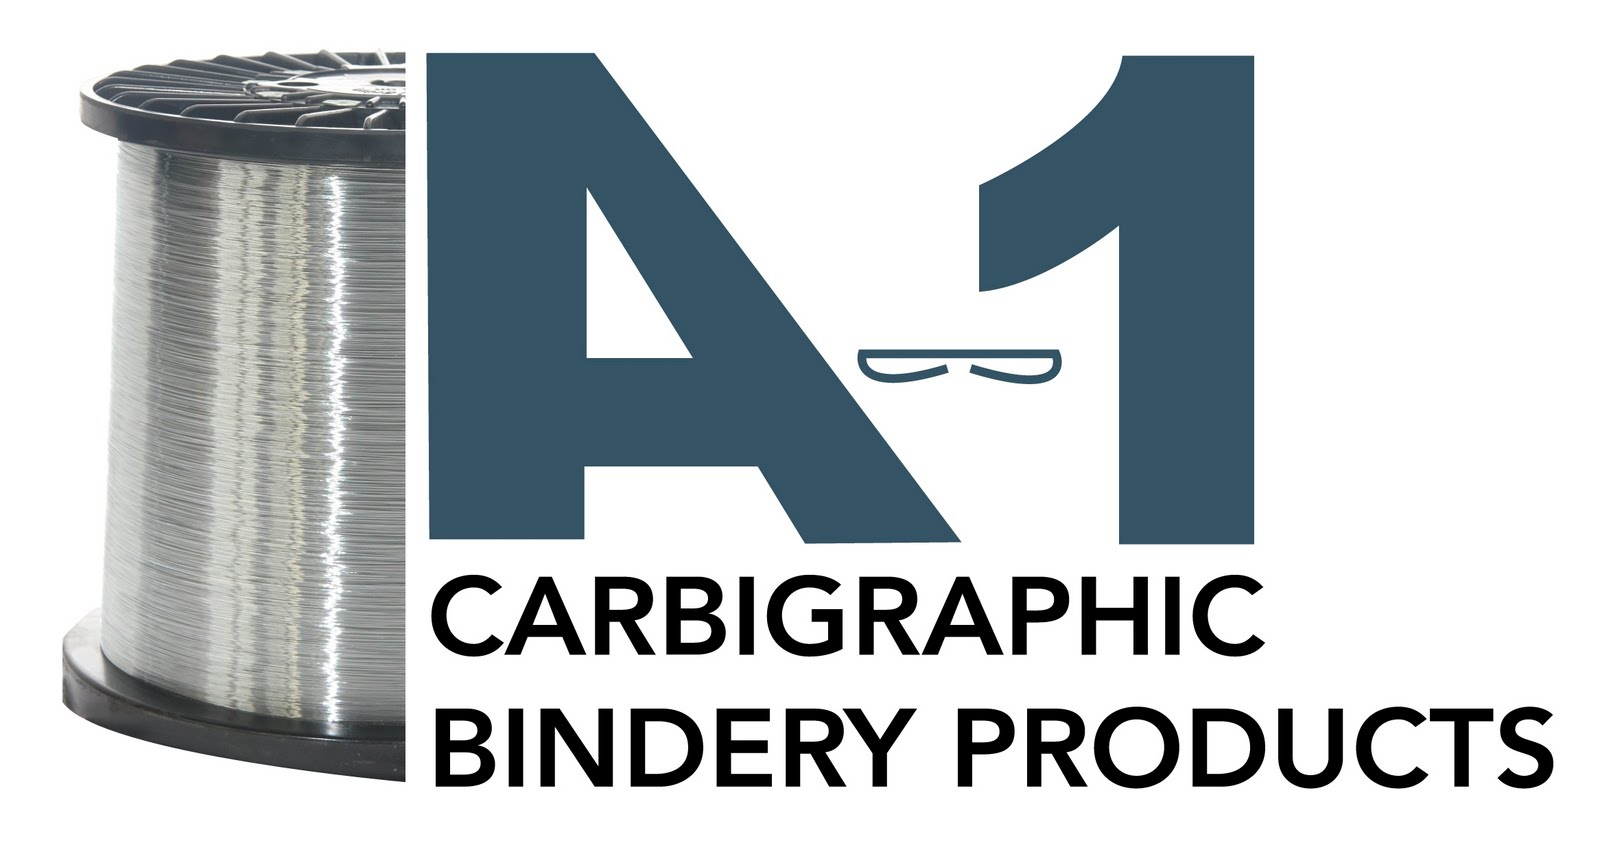 A-1 Carbigraphic Bindery Products, Glendale WI